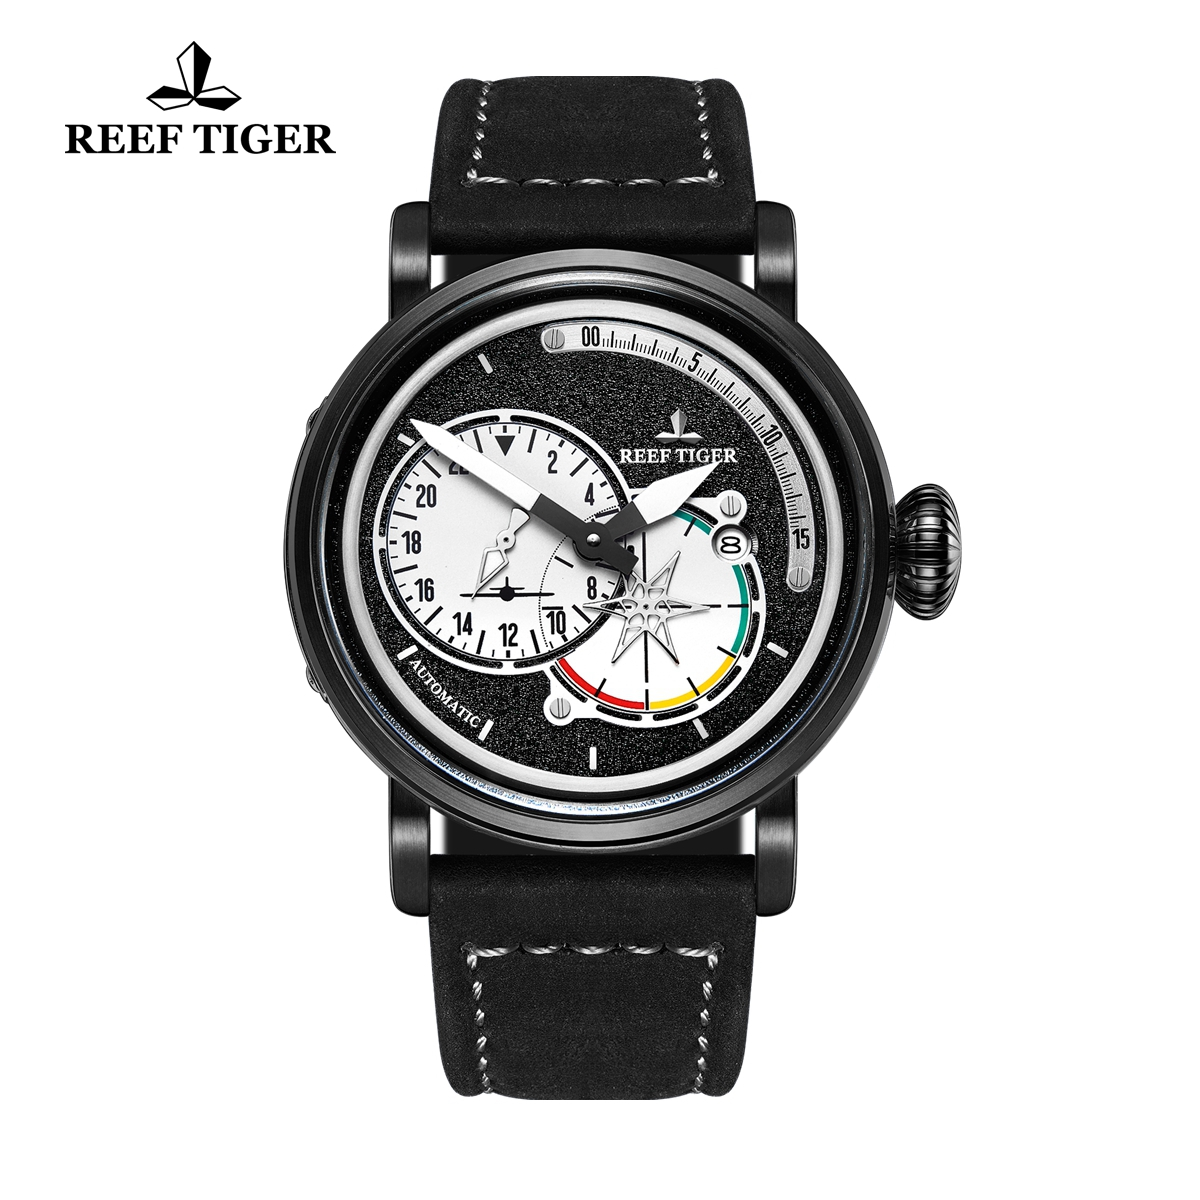 Reef Tiger Pilot Fashion Mens Watches PVD Case Black Dial Leather Strap Watches RGA3019-BWB